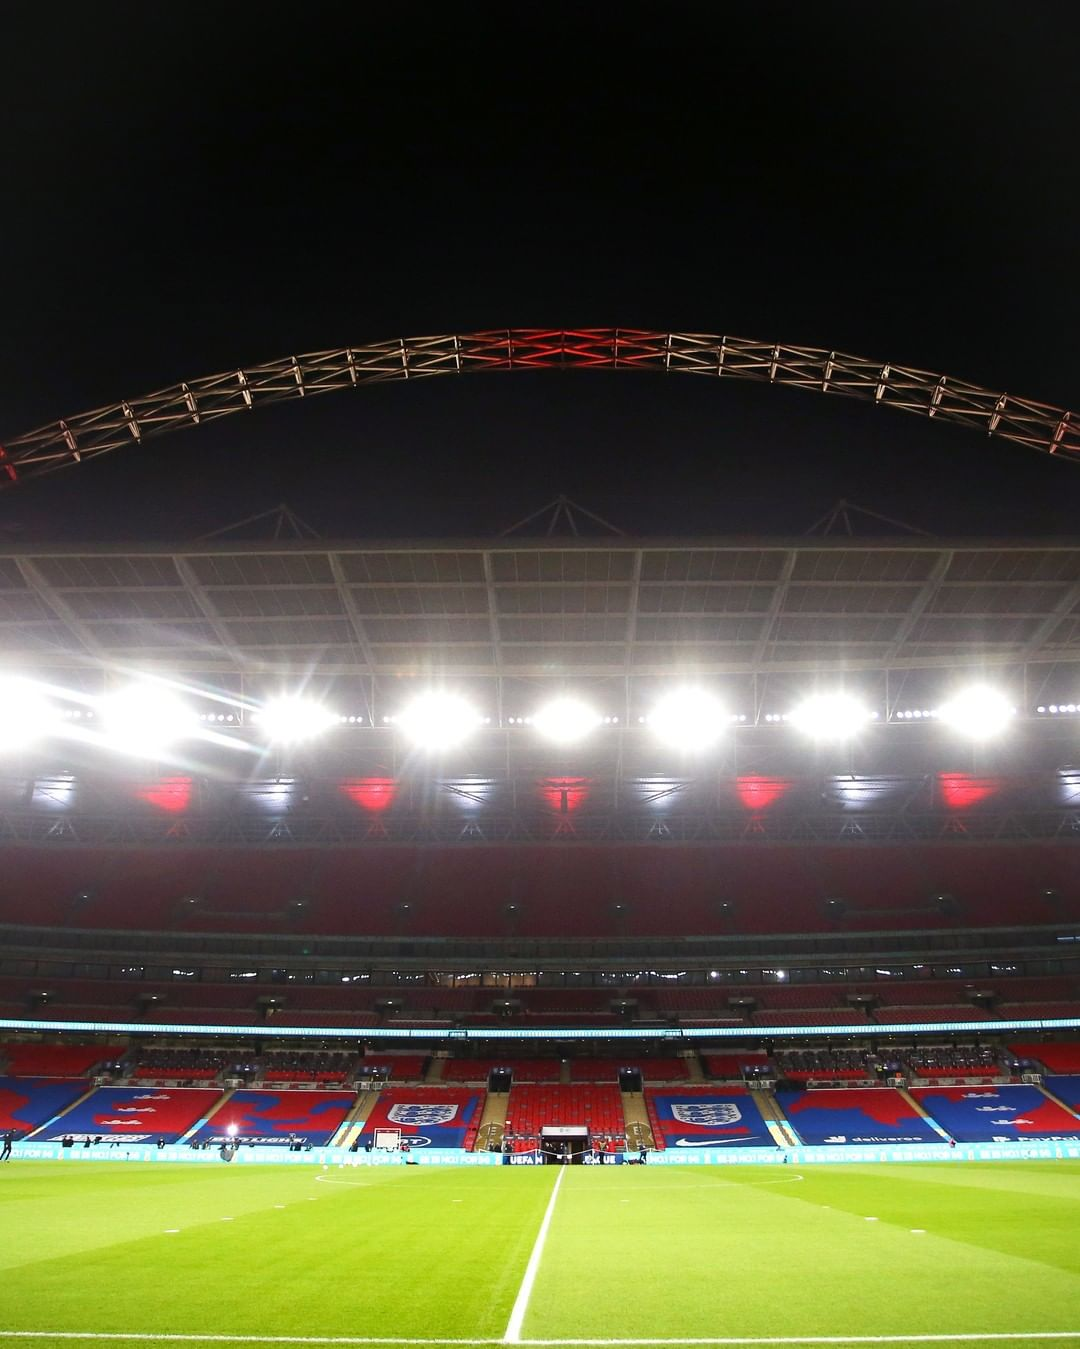 Which player do you think of first when you see Wembley Stadium? ...